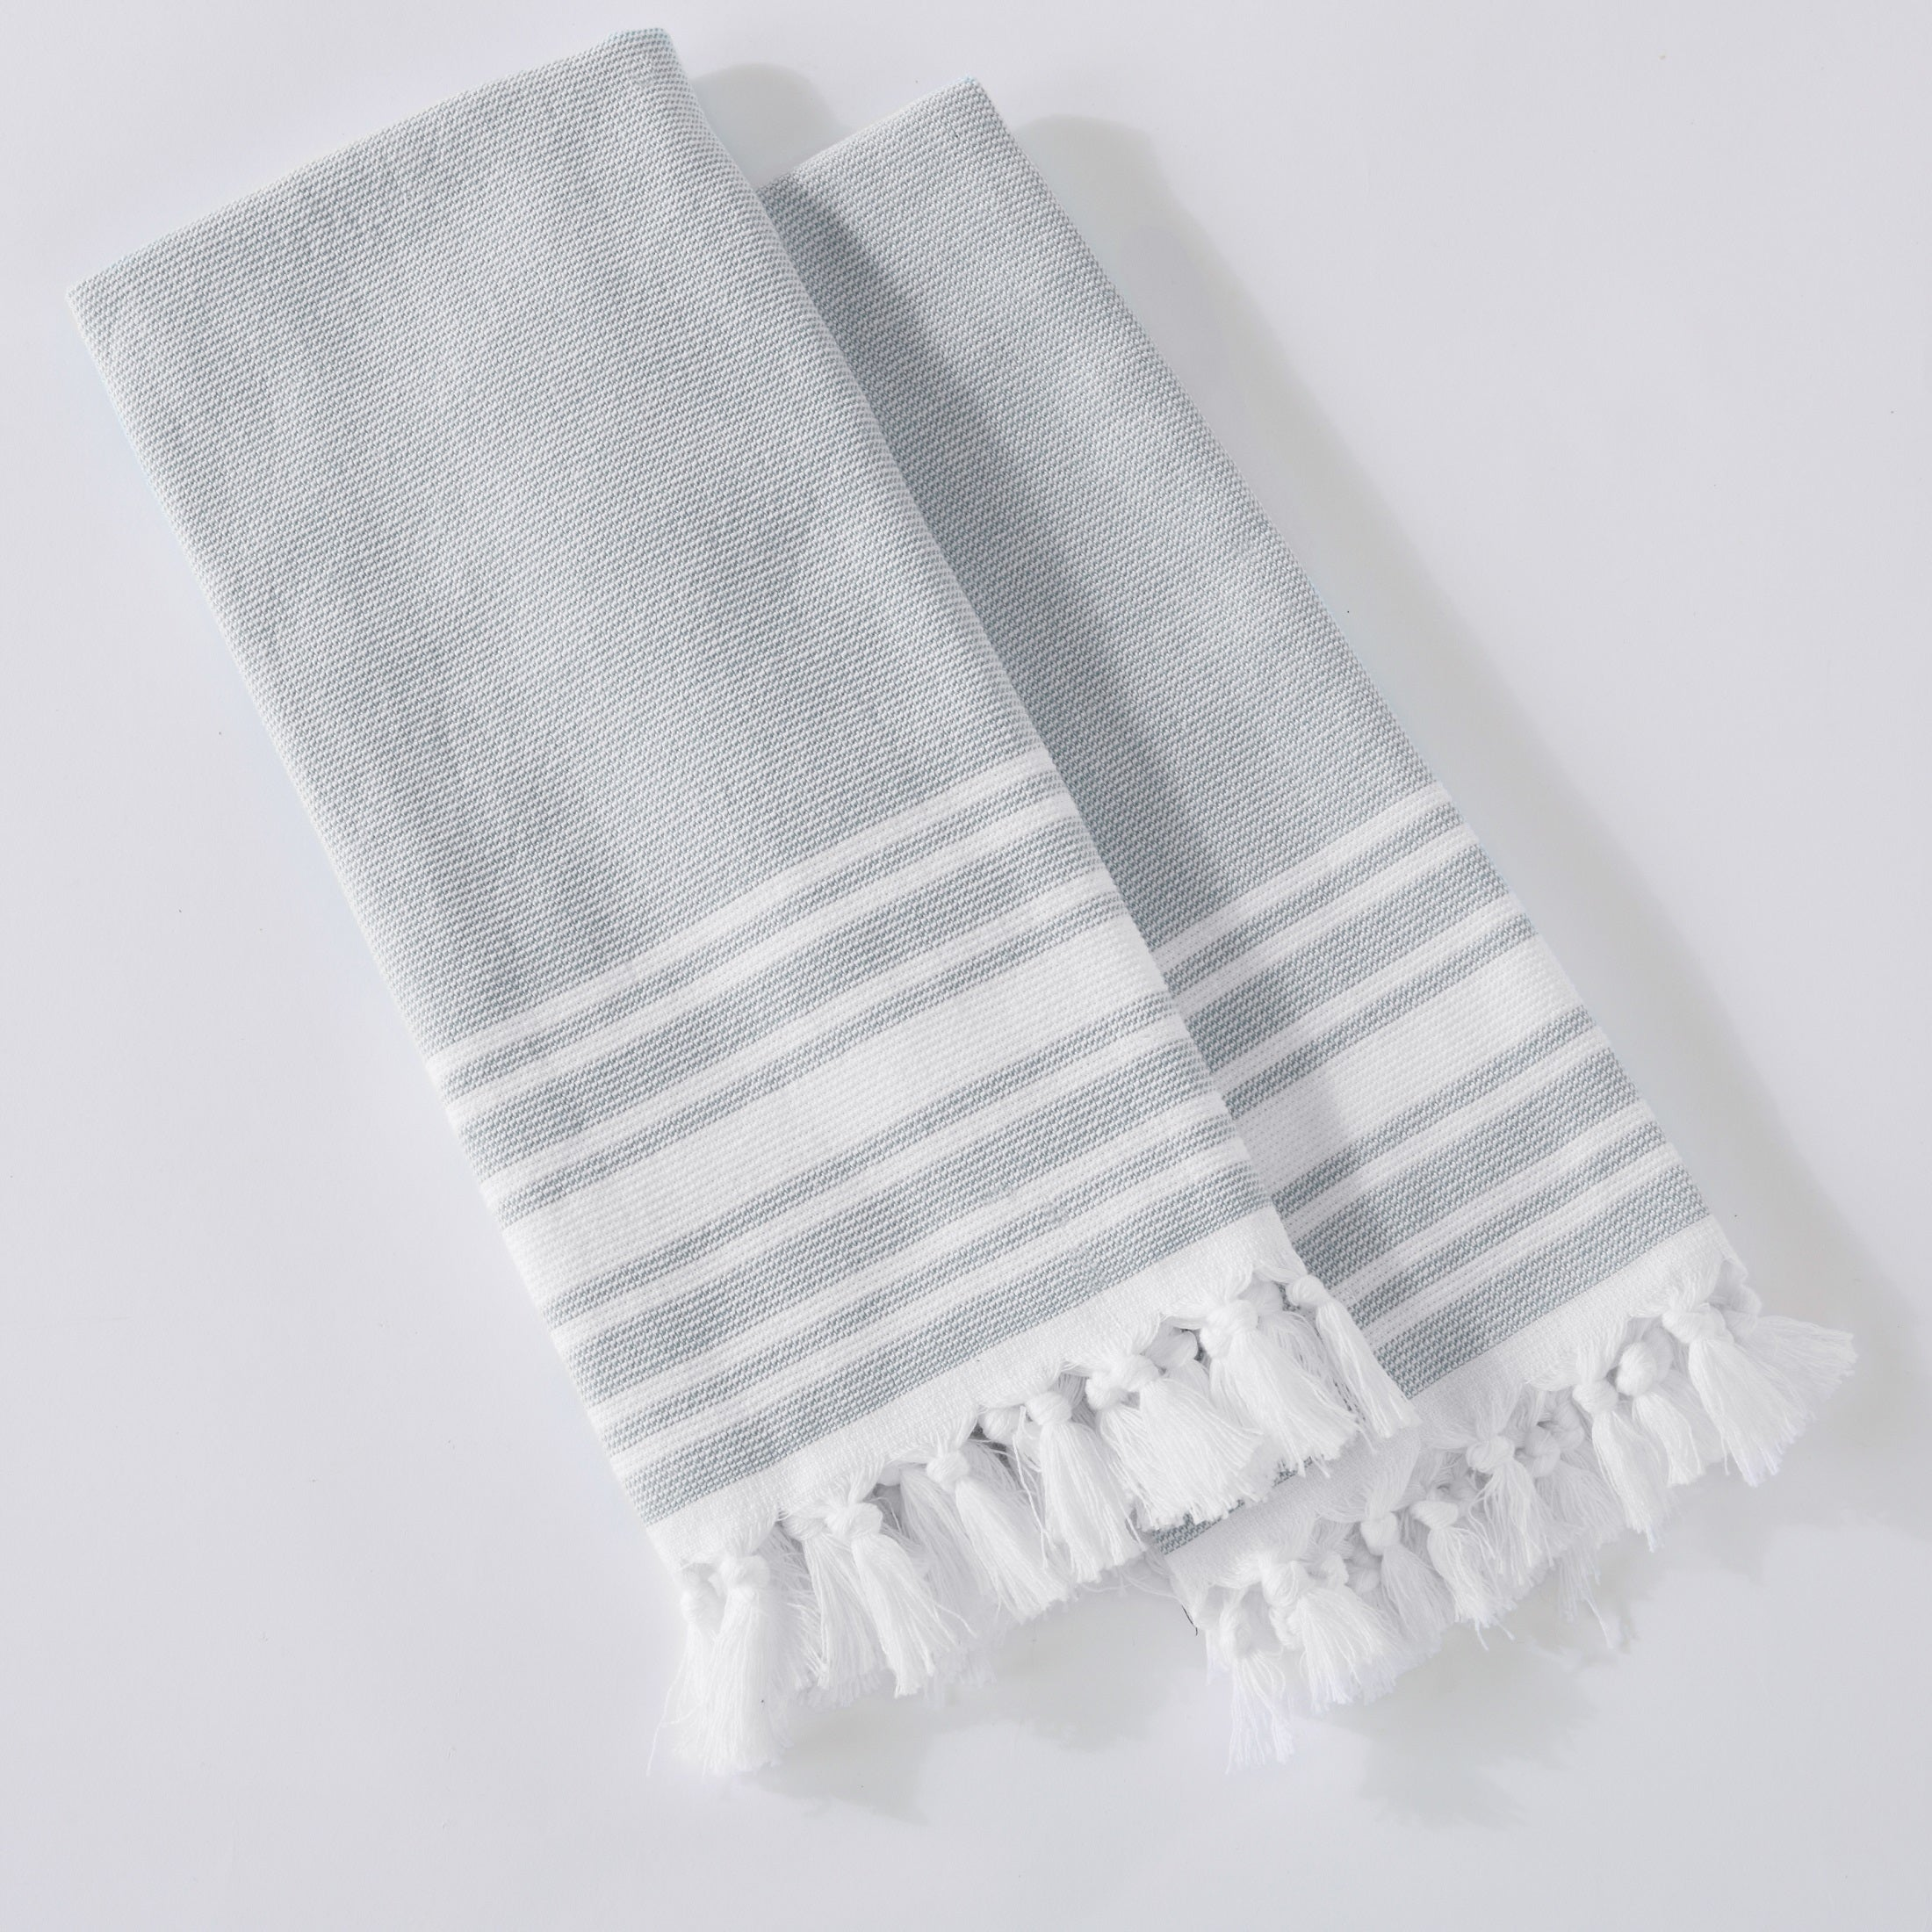 Bon Shop Home Fashion Designs Natasha Collection 4 Piece 100% Cotton Kitchen  Towel Set With Fouta Design   Free Shipping On Orders Over $45    Overstock.com   ...